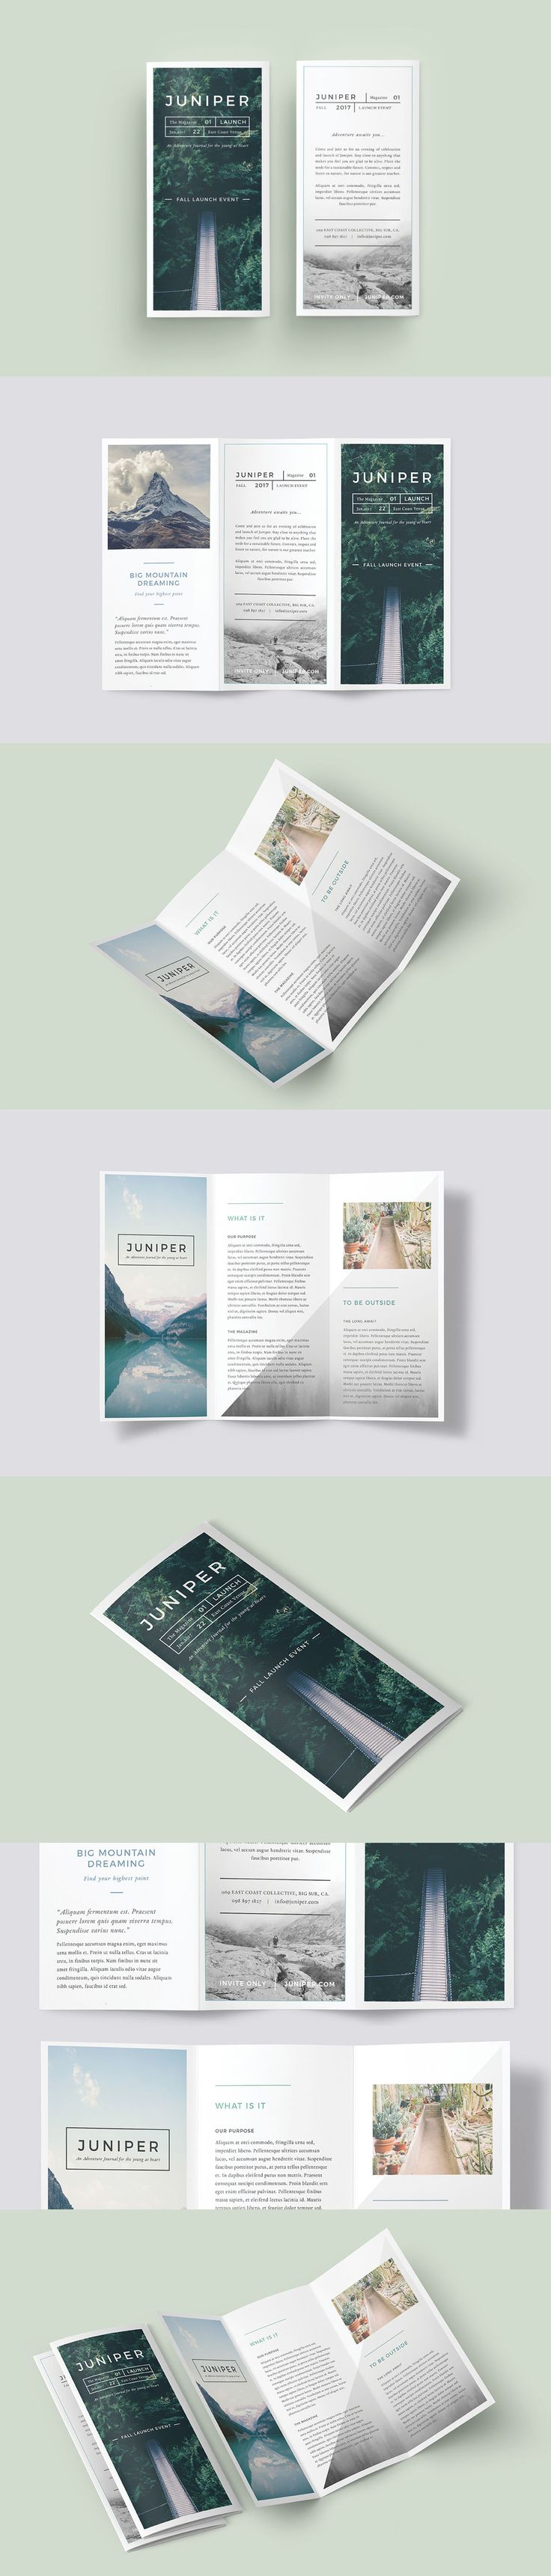 Best Images About TriFold Brochure On   Resorts